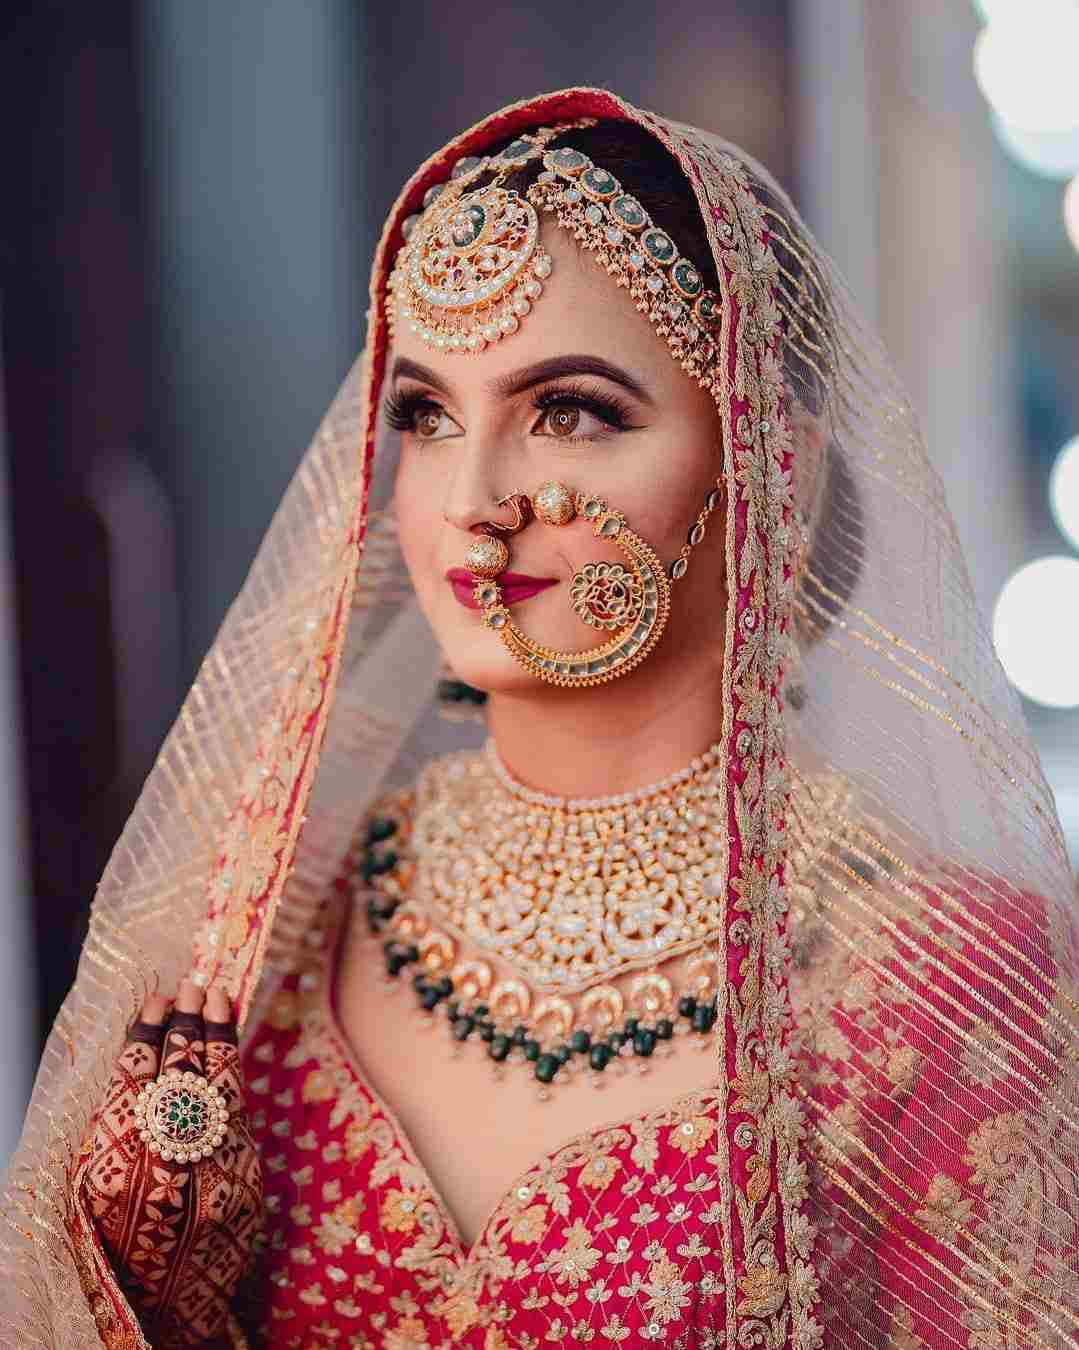 Bridal portrait | Bridal jewellery | Bridal jewelry | Nath | Naath | Bridal look